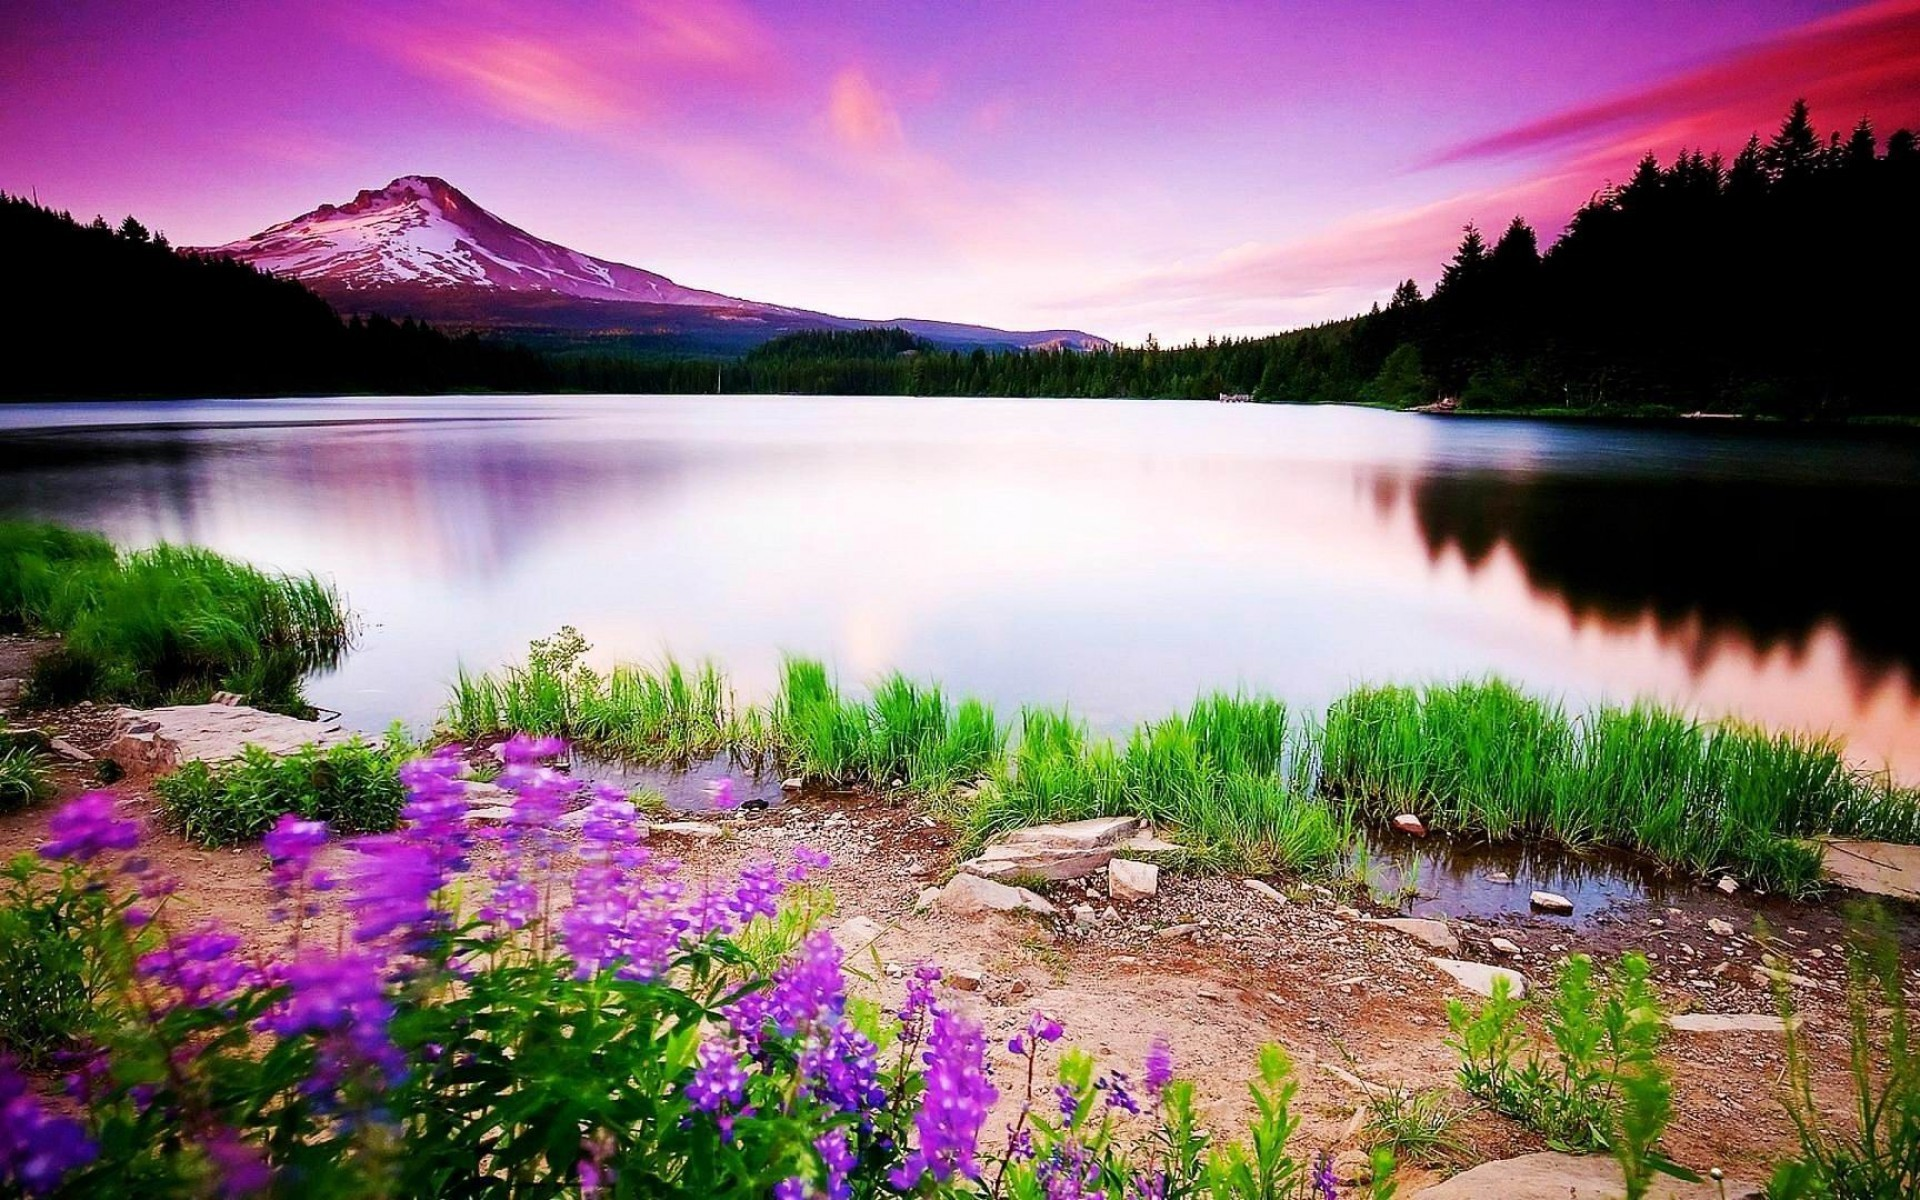 Natural Beauty Wallpapers: Natural Beauty Nature HD Wallpaper No. 0093 1920x1200